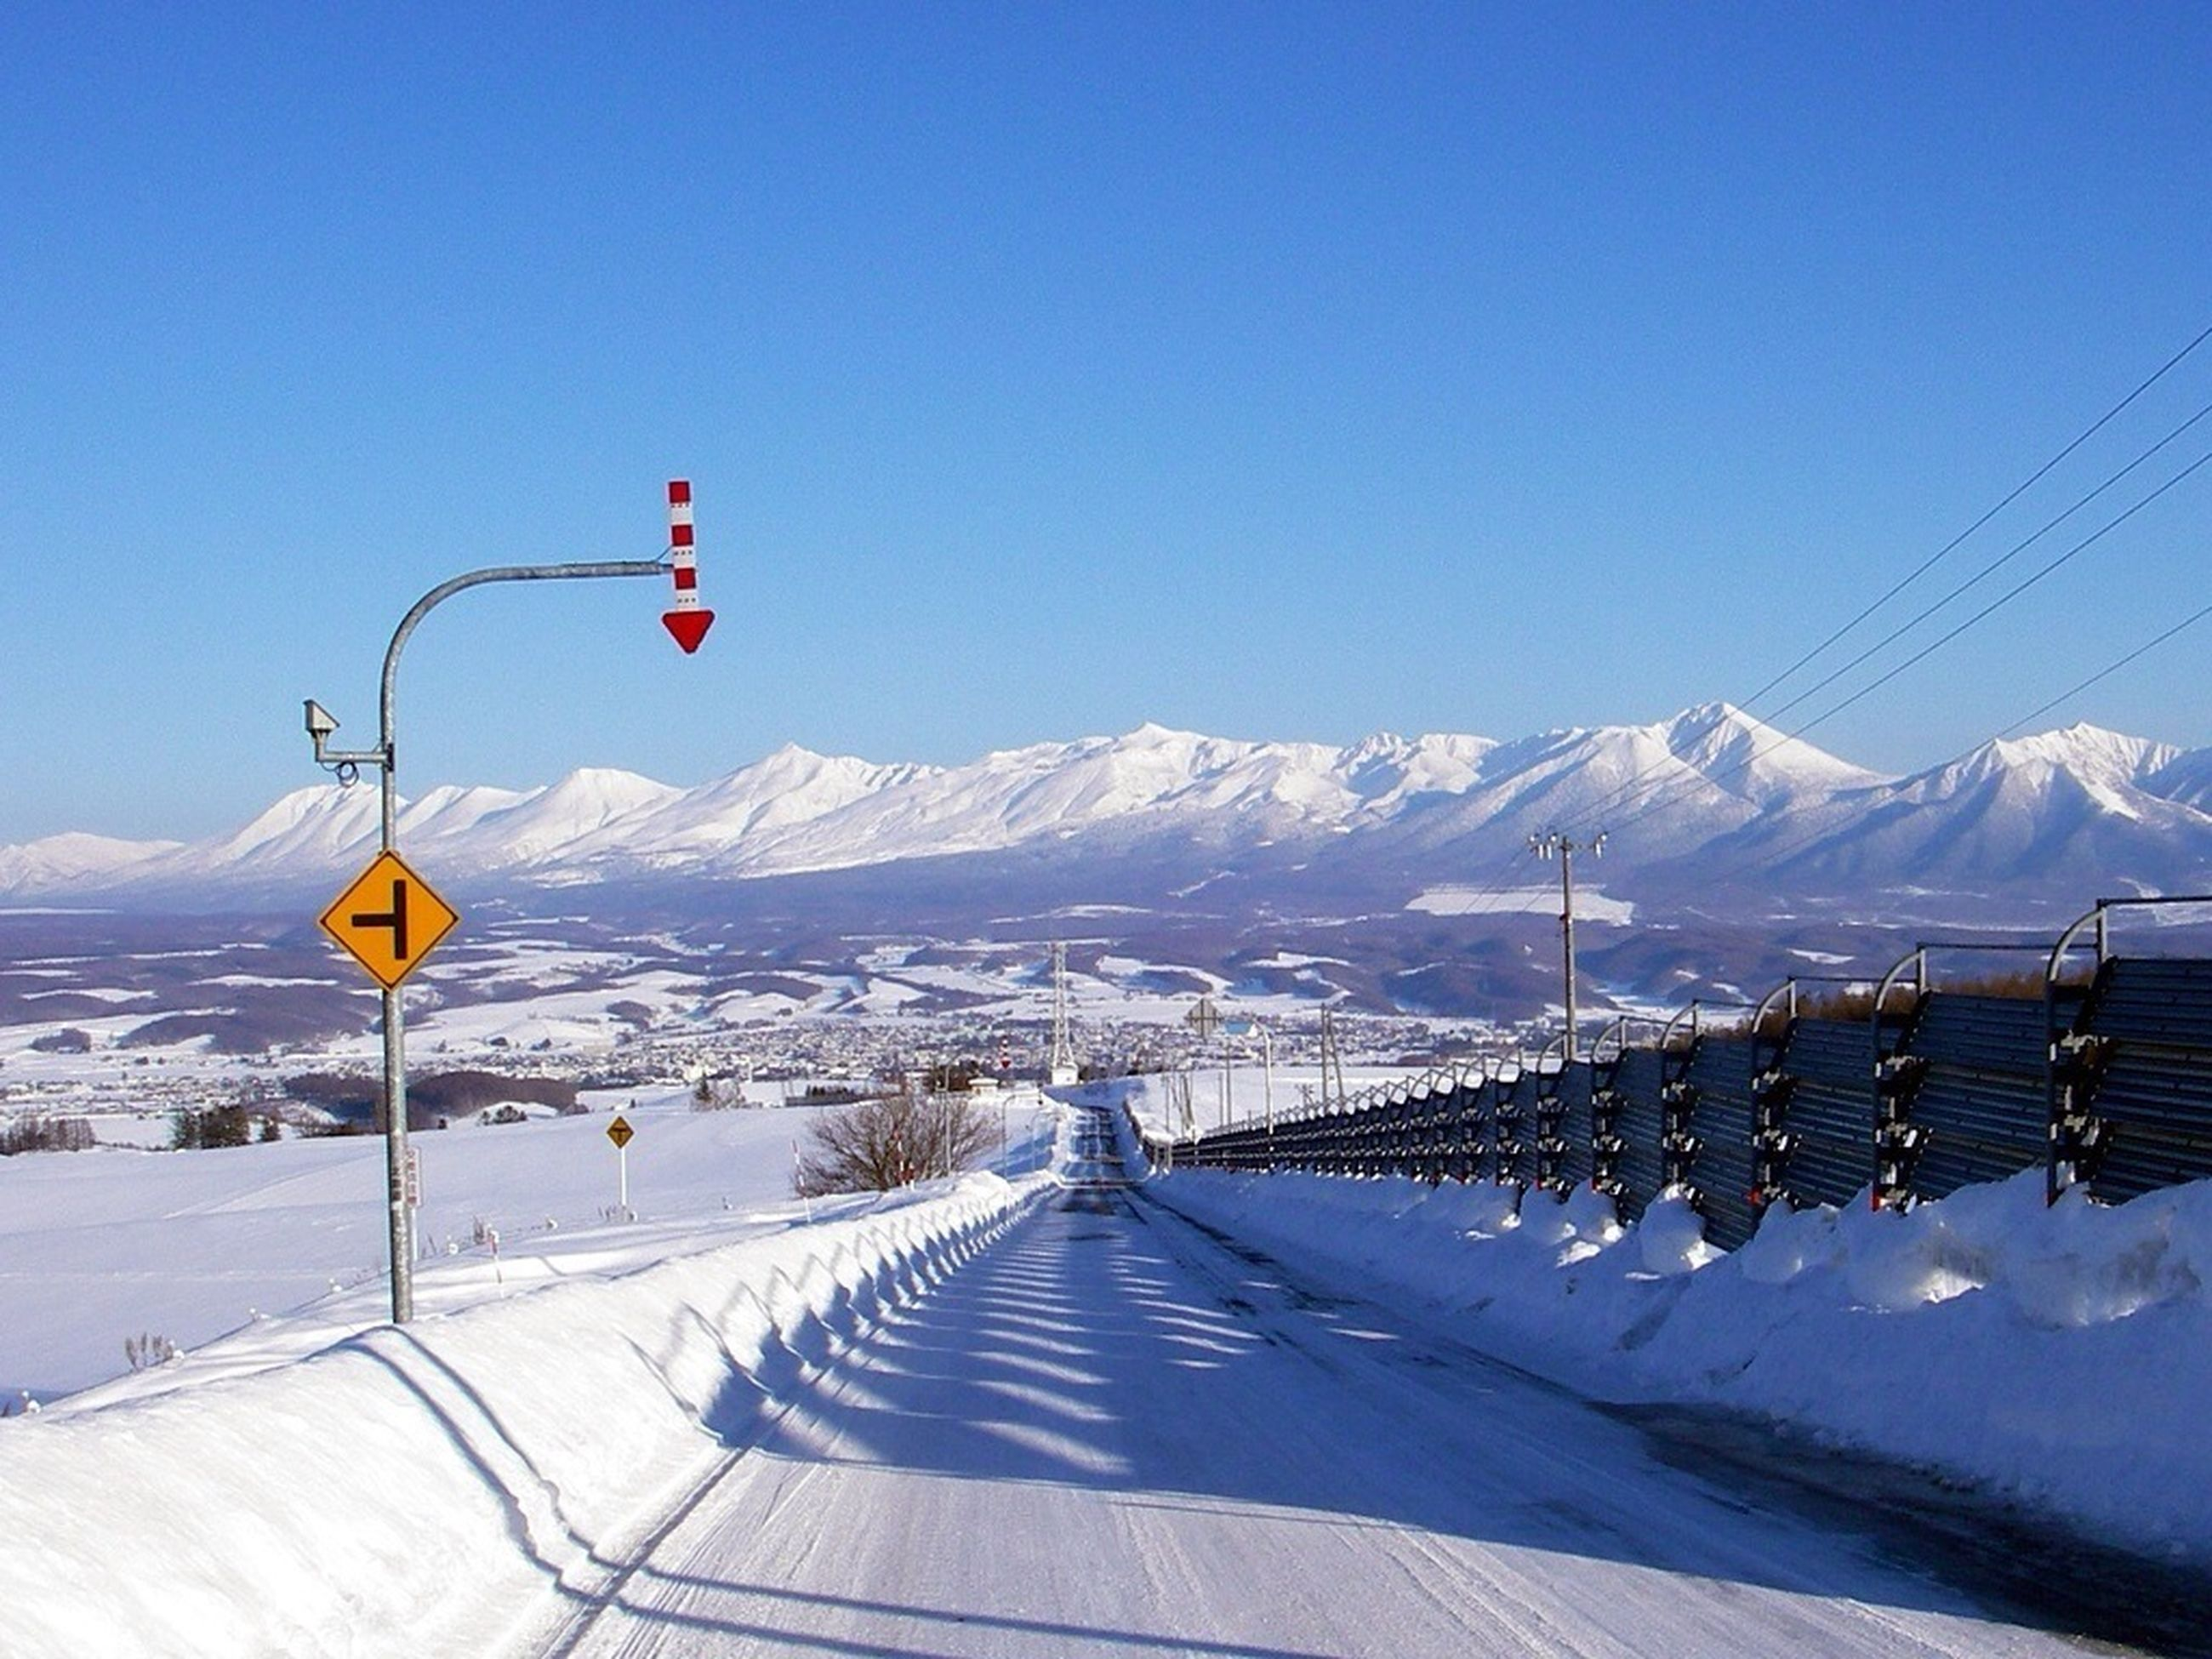 snow, winter, cold temperature, mountain, season, clear sky, mountain range, snowcapped mountain, blue, scenics, tranquil scene, tranquility, landscape, beauty in nature, weather, covering, nature, transportation, the way forward, non-urban scene